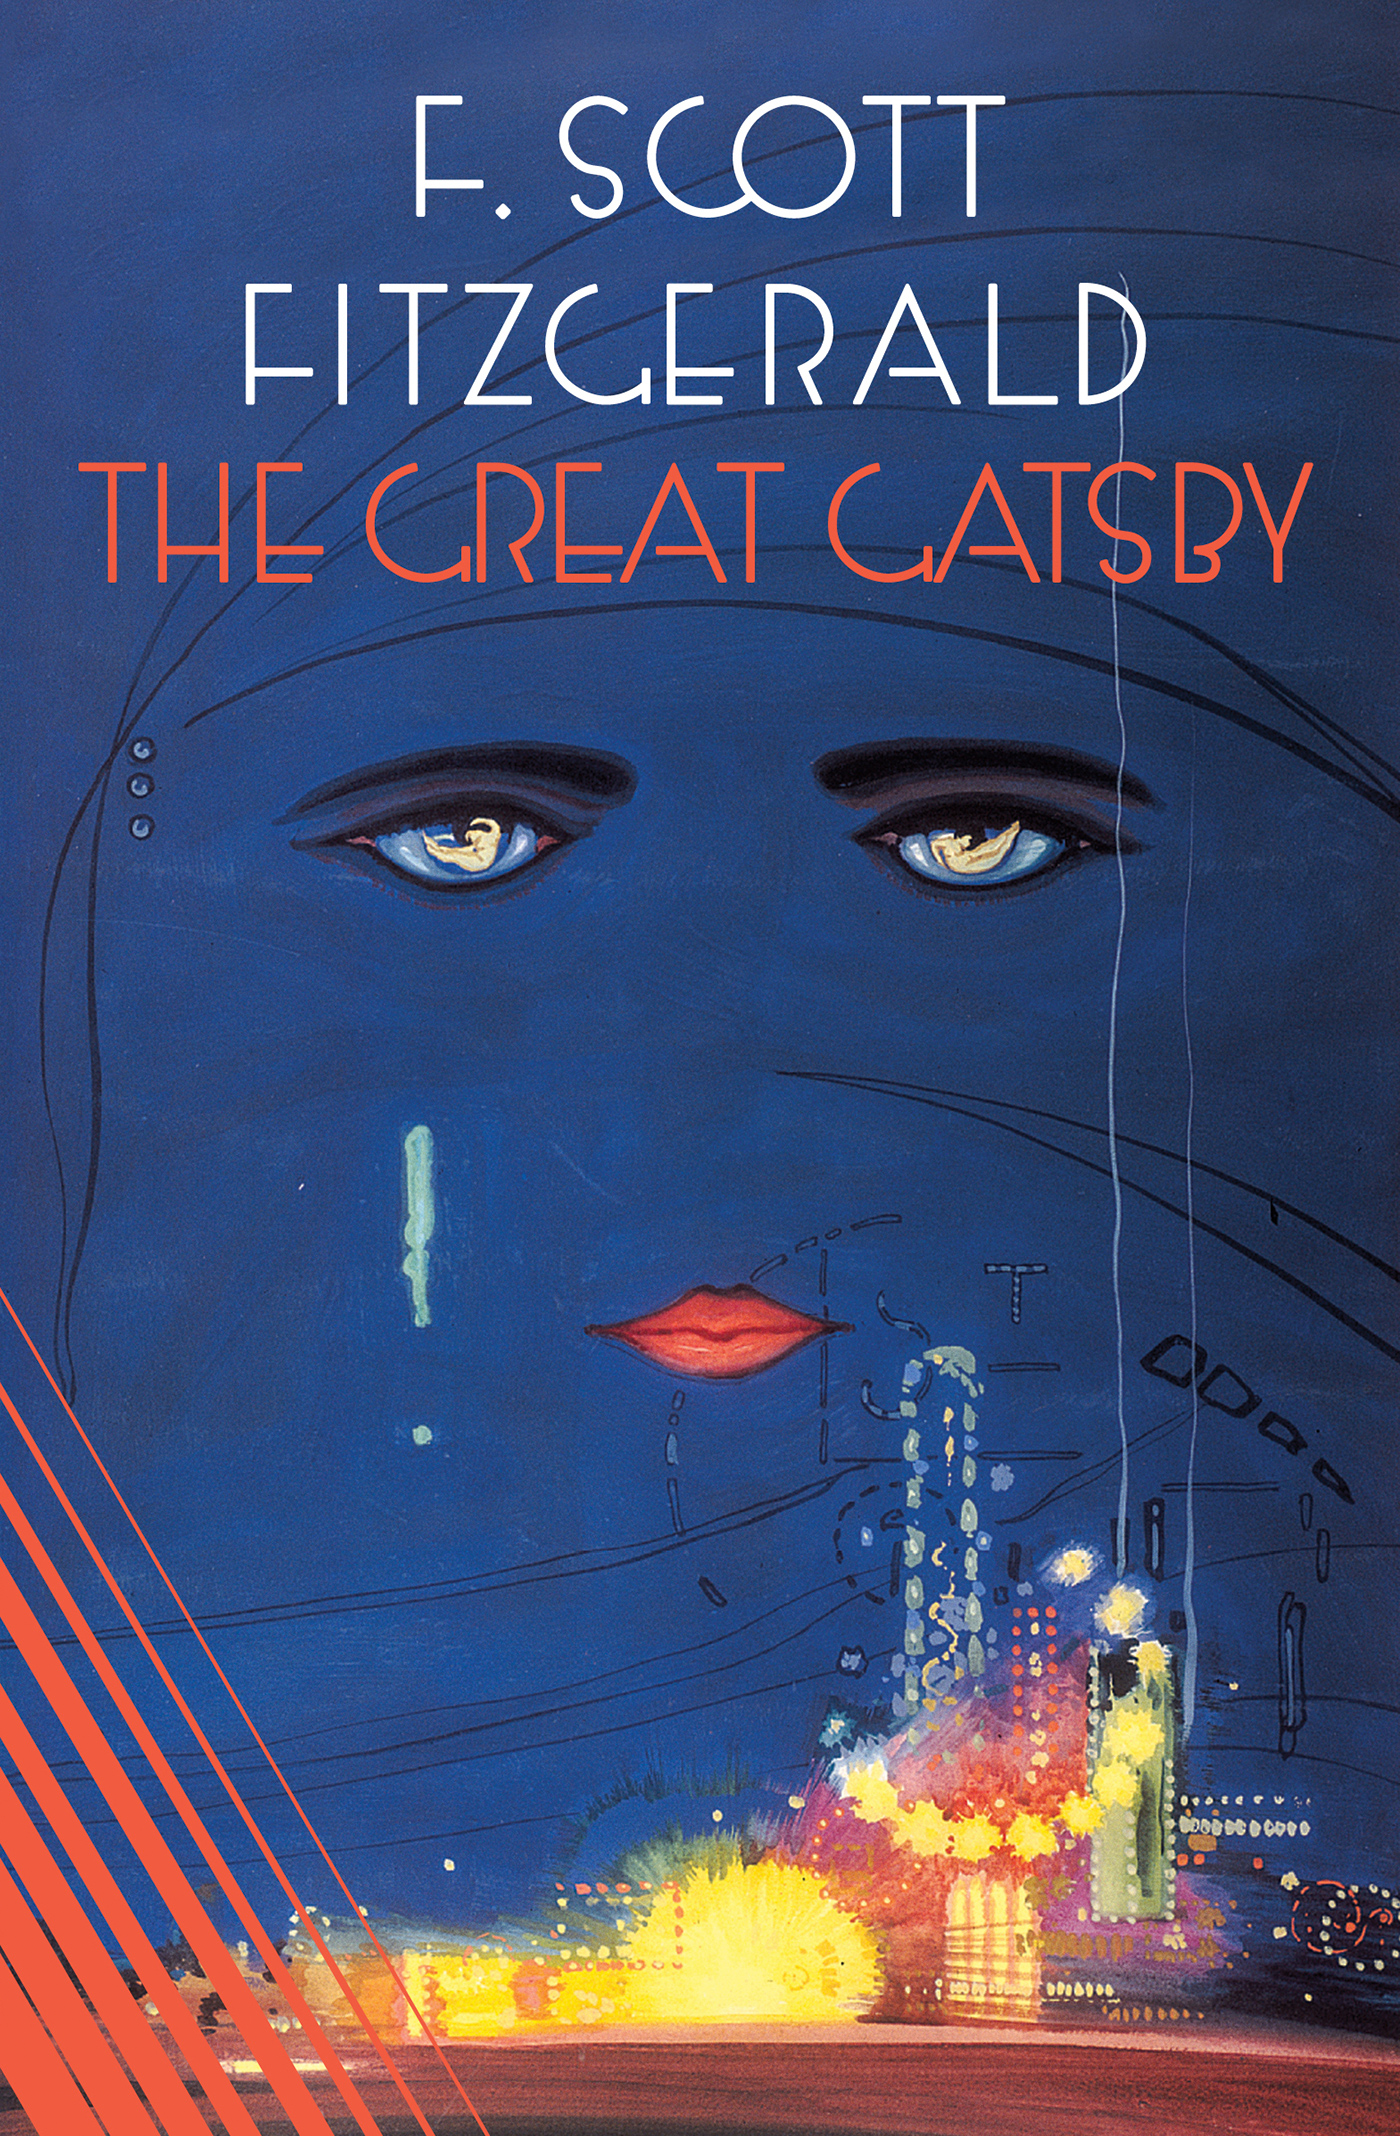 The-Great-Gatsby.jpeg